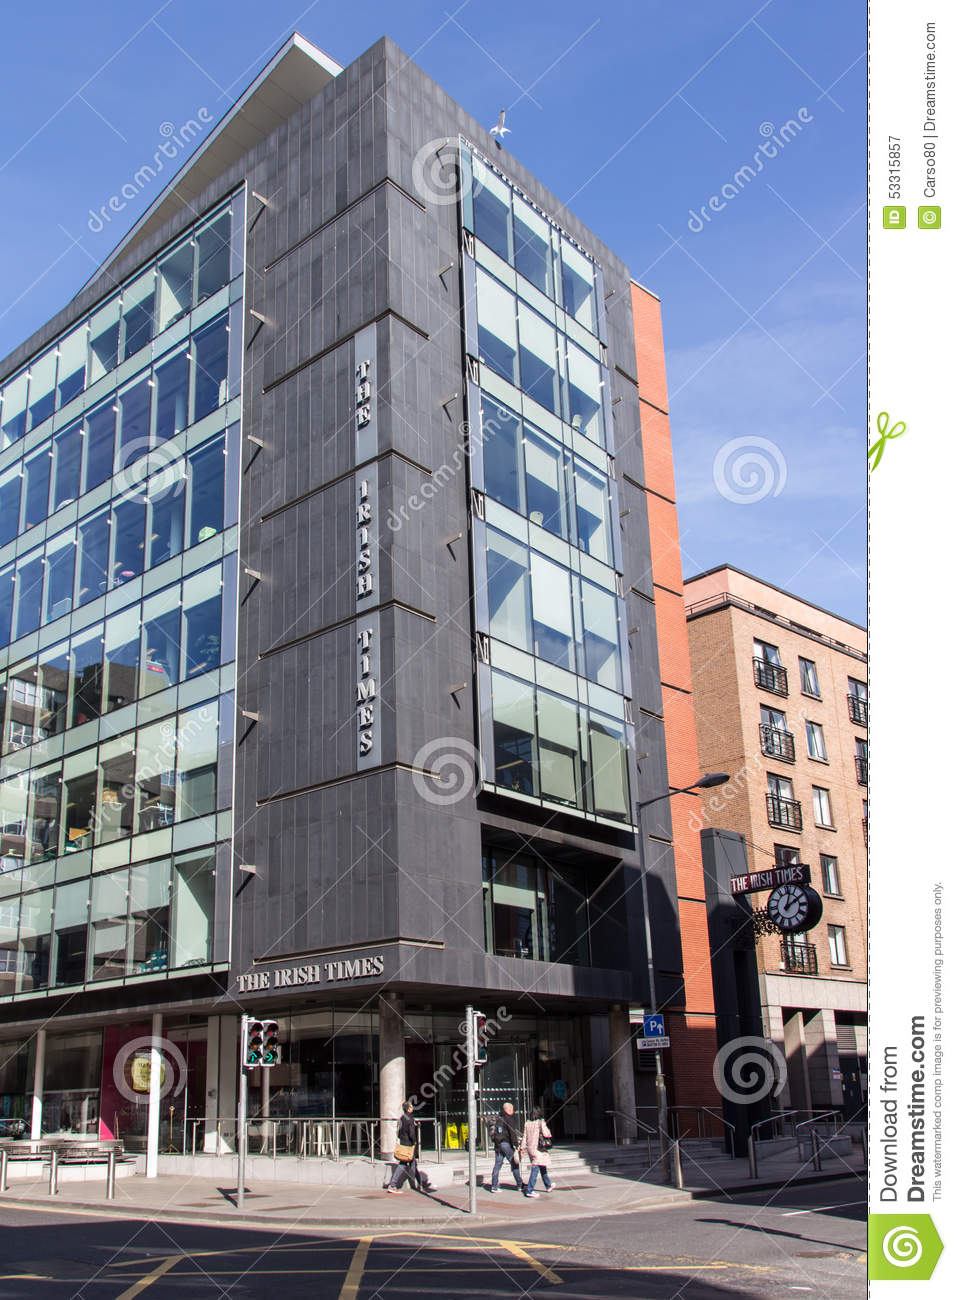 The irish times building in dublin ireland 2015 editorial photography image 53315857 - Irish times office dublin ...